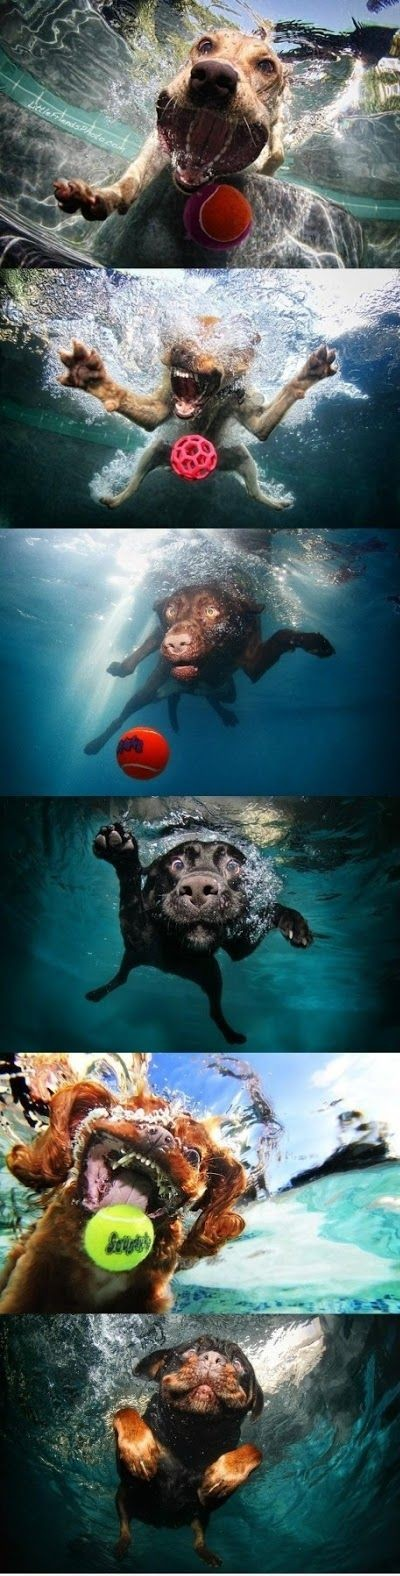 swimming moments funny dog picture